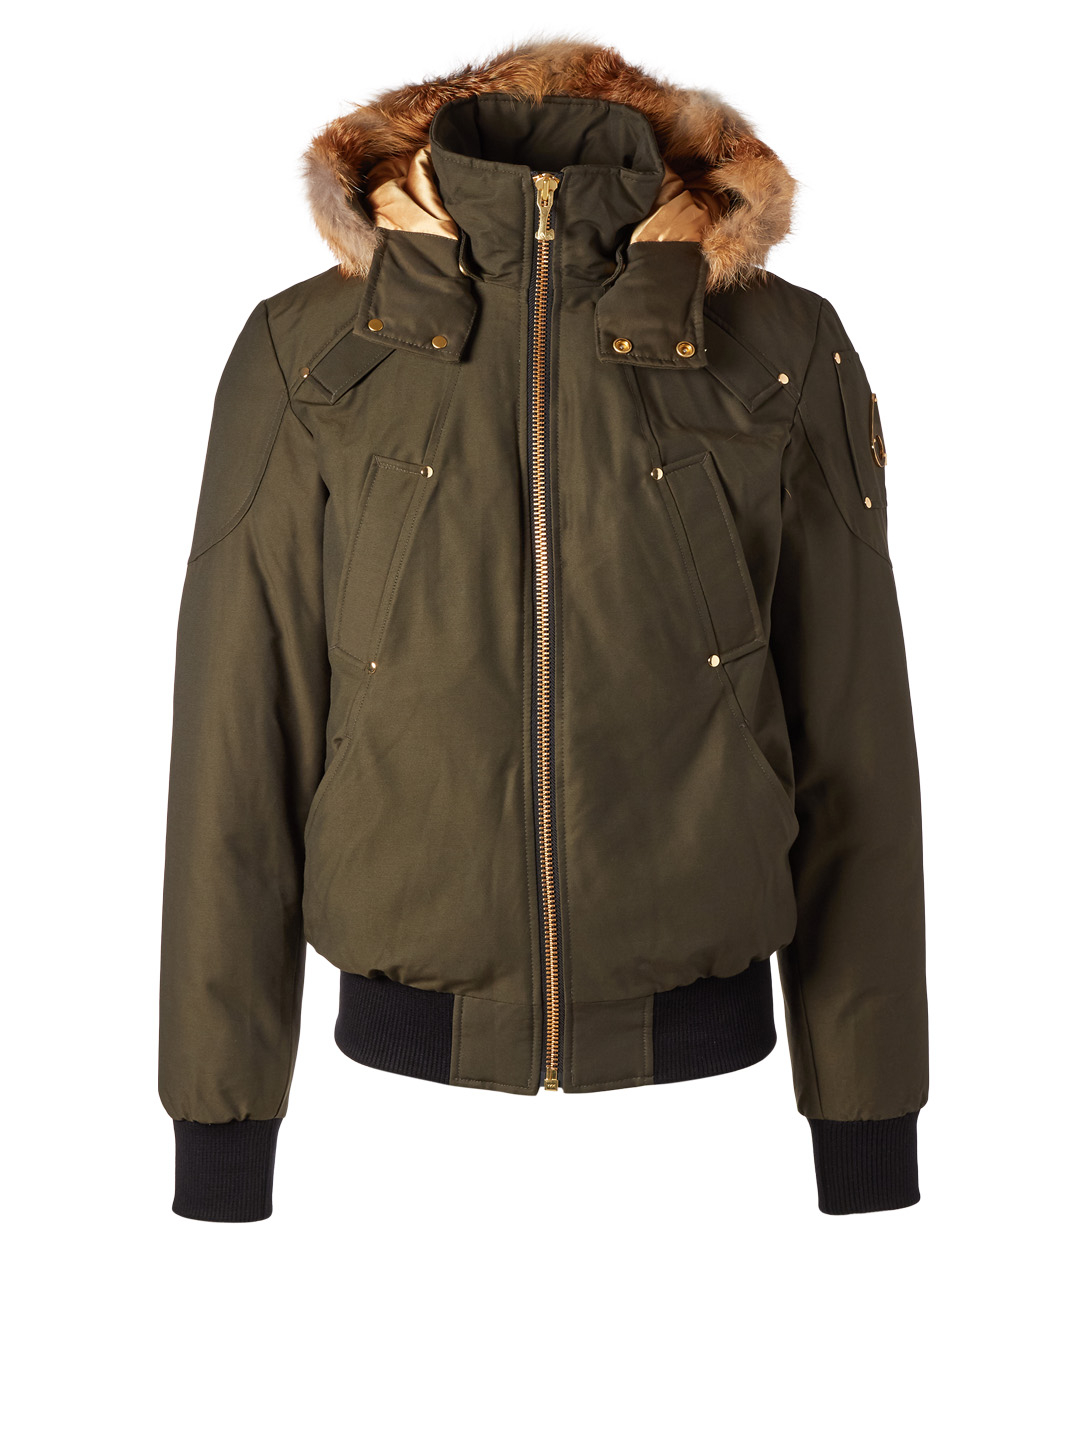 MOOSE KNUCKLES Down Bomber Jacket With Fur Trim Men's Green